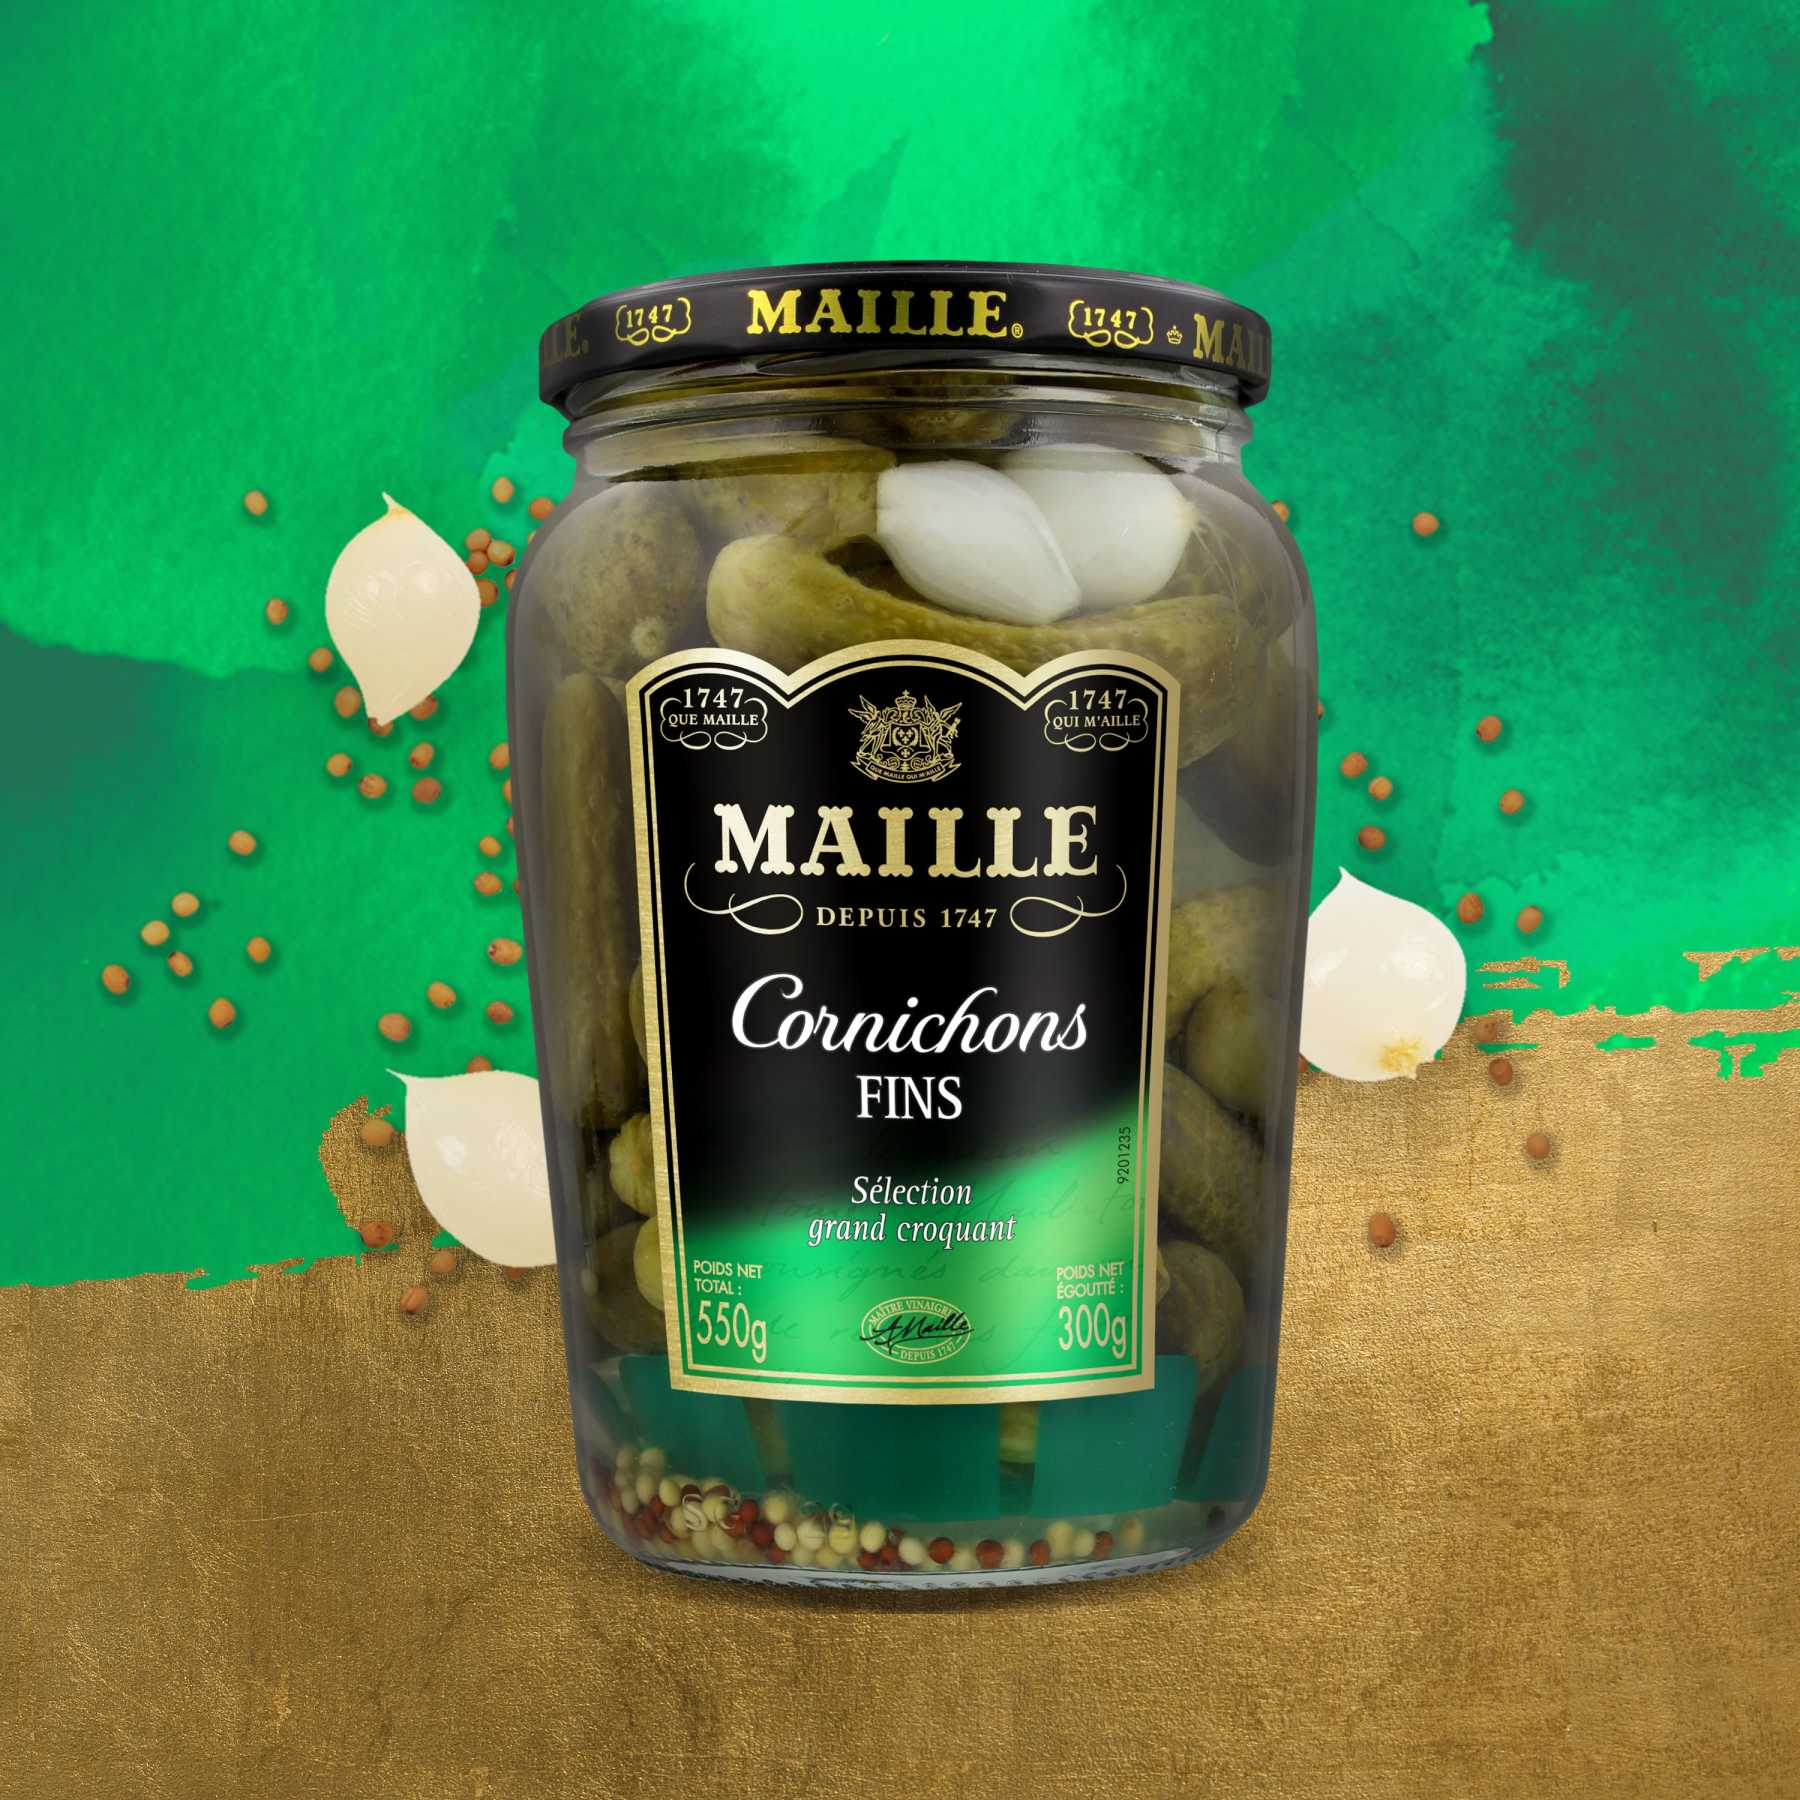 Maille - Cornichons Fins Bocal 300 g, new visual